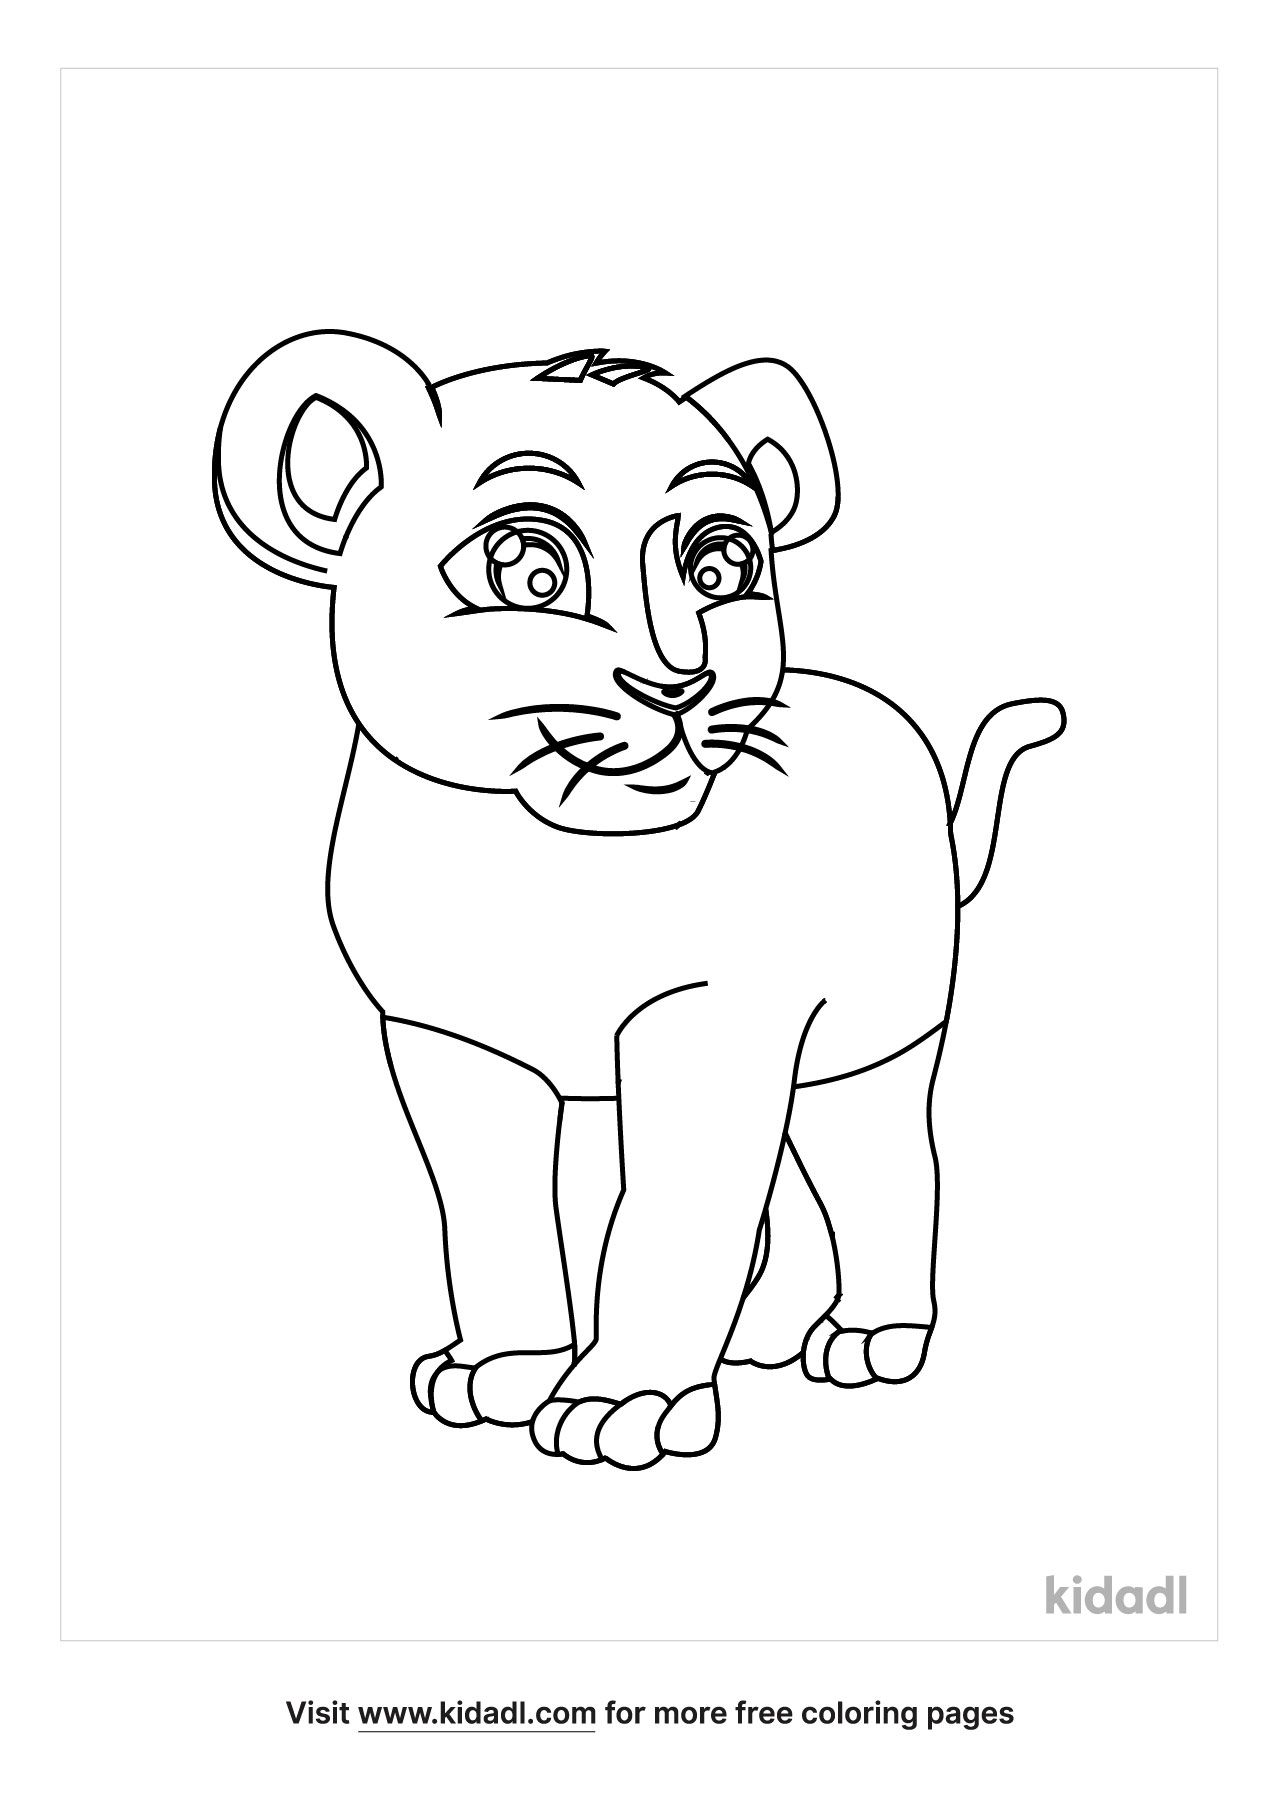 cougar coloring free animals kidadl lg tattoo skin pen dragon printable pictures happy coloring pages Cougar Coloring Page